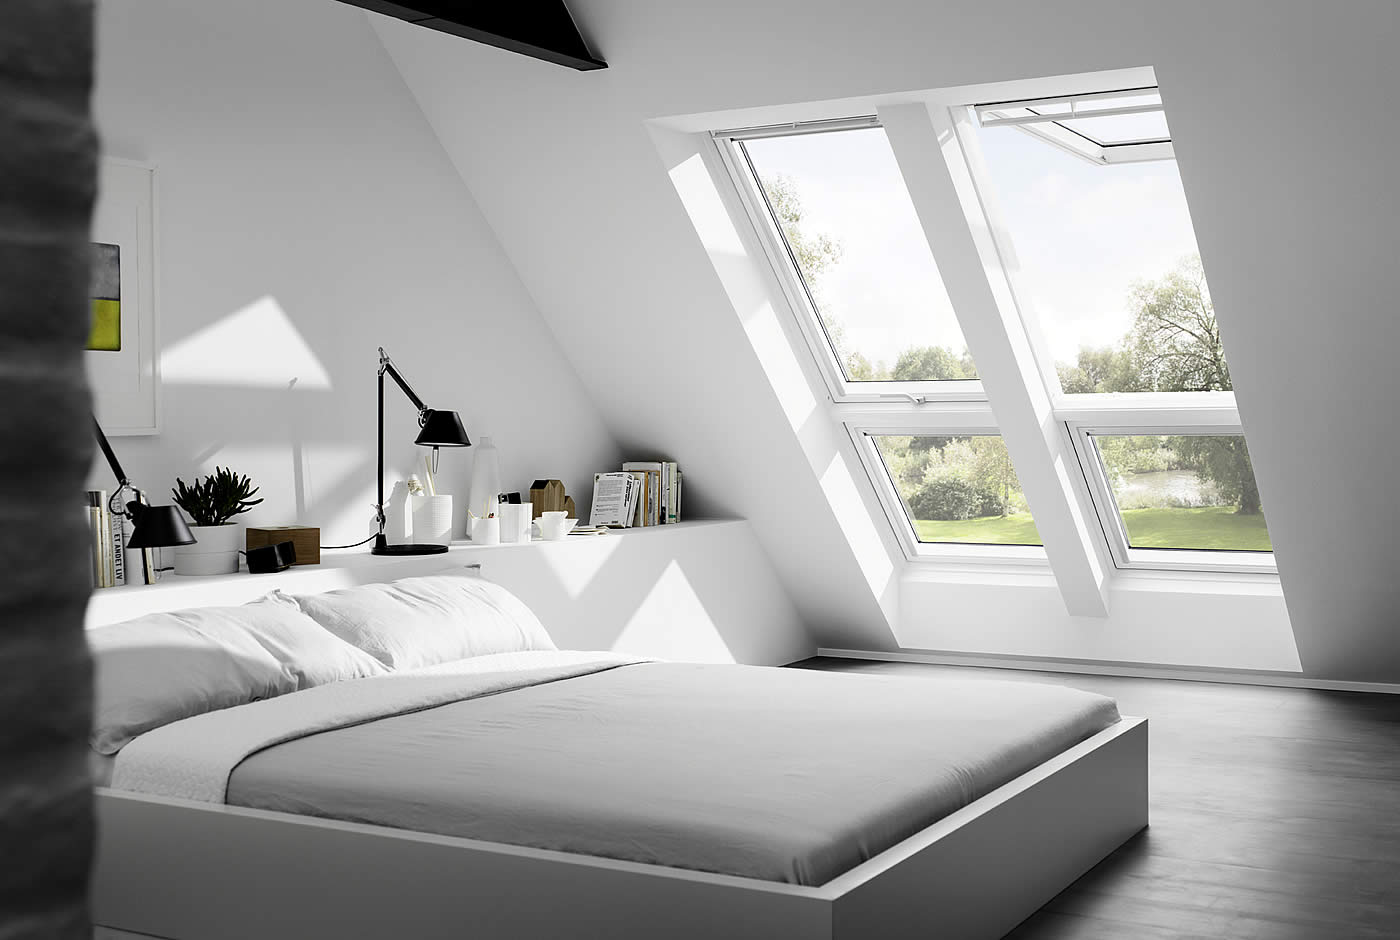 velux dachfenster beratung und einbau. Black Bedroom Furniture Sets. Home Design Ideas